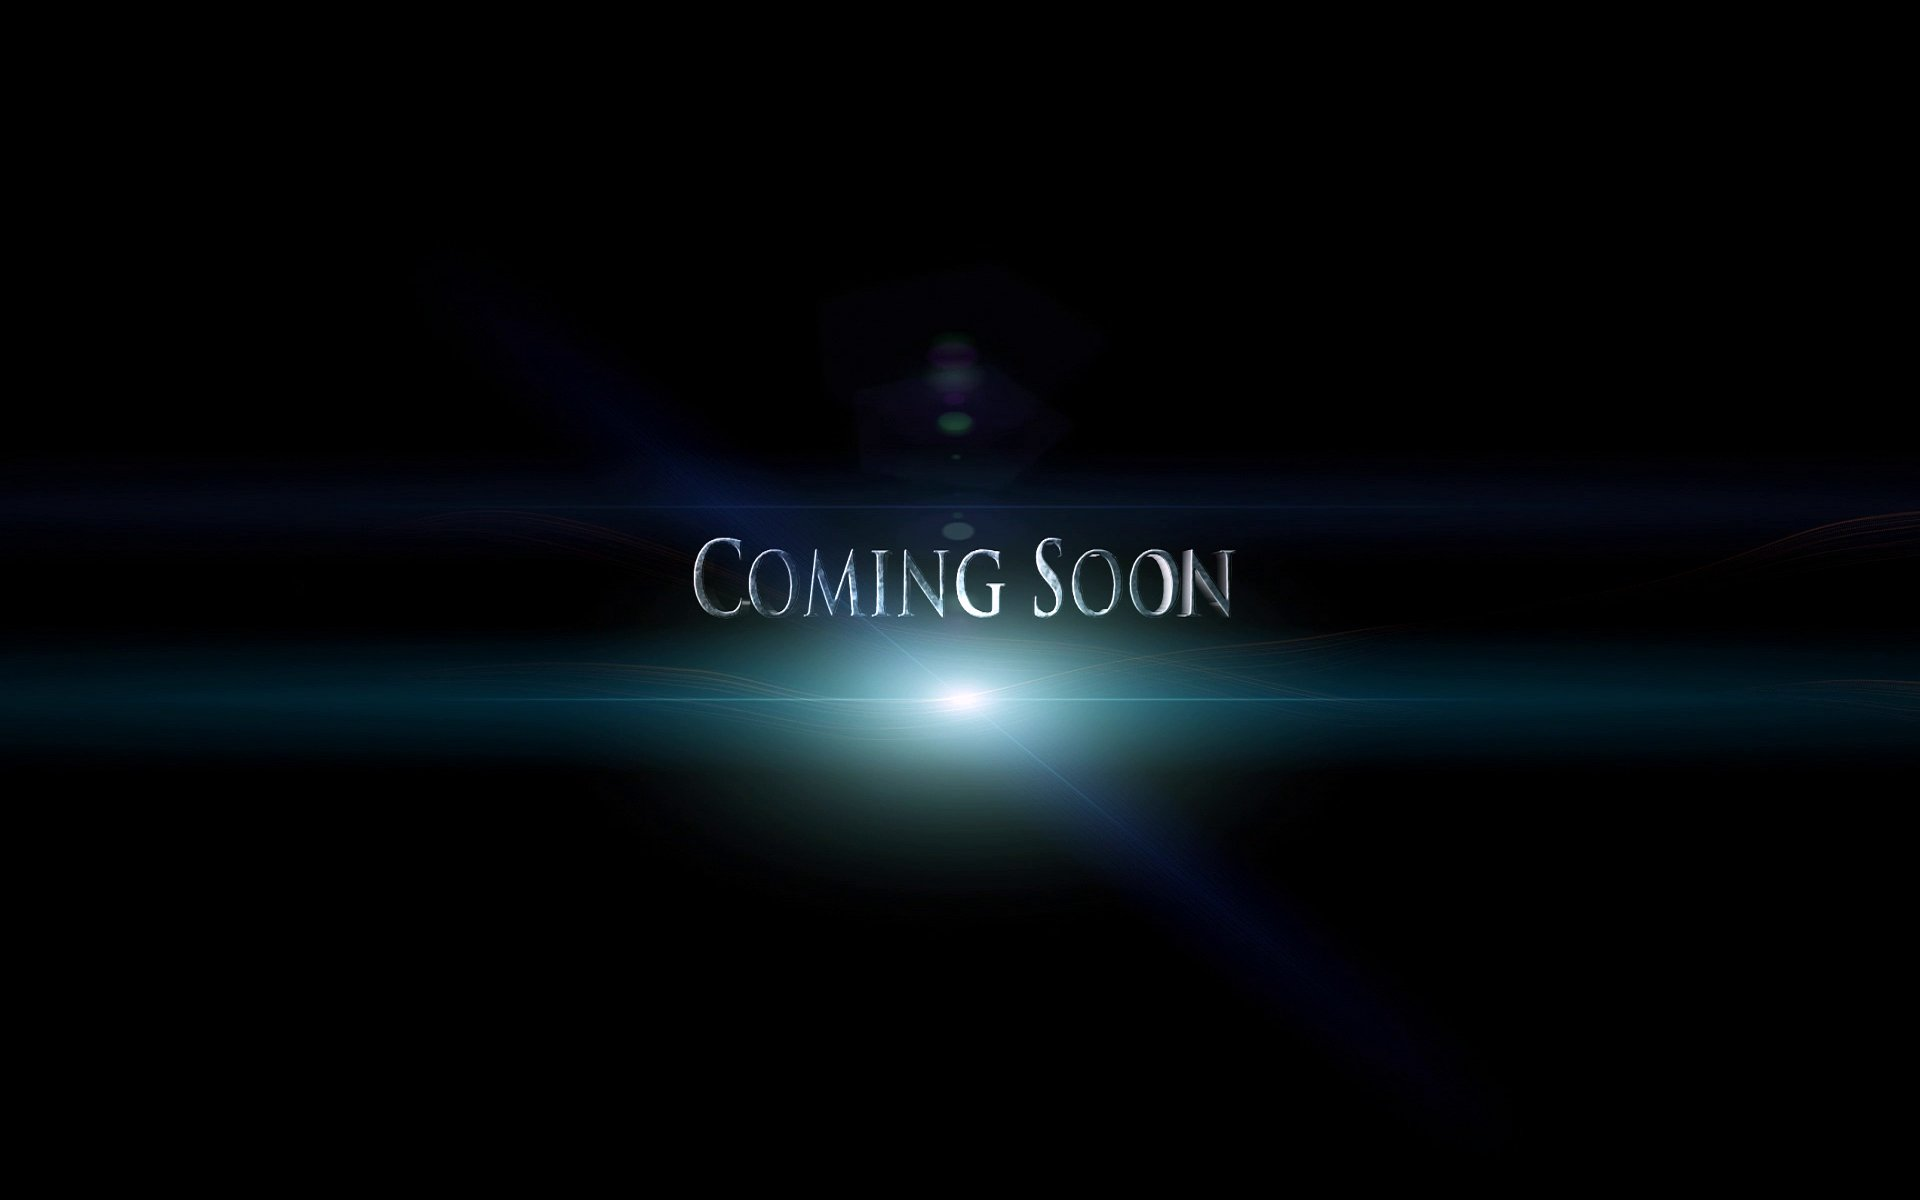 Exceptional Coming Soon Sign Text Coming Soon Wallpaper 1920x1200 457783 WallpaperUP